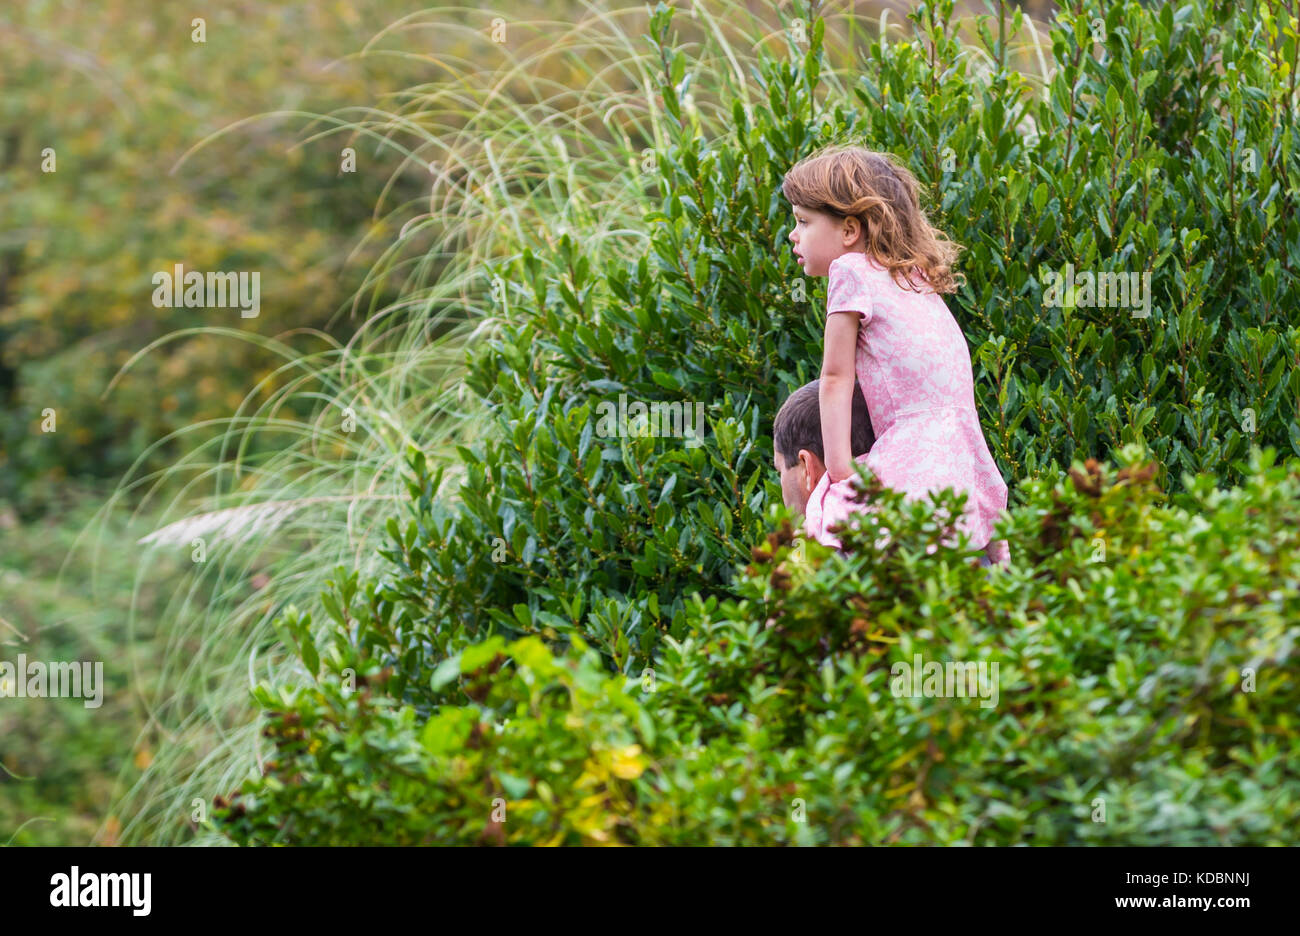 Young girl being carried on a man's shoulders, a piggyback ride, through a park in the UK. - Stock Image